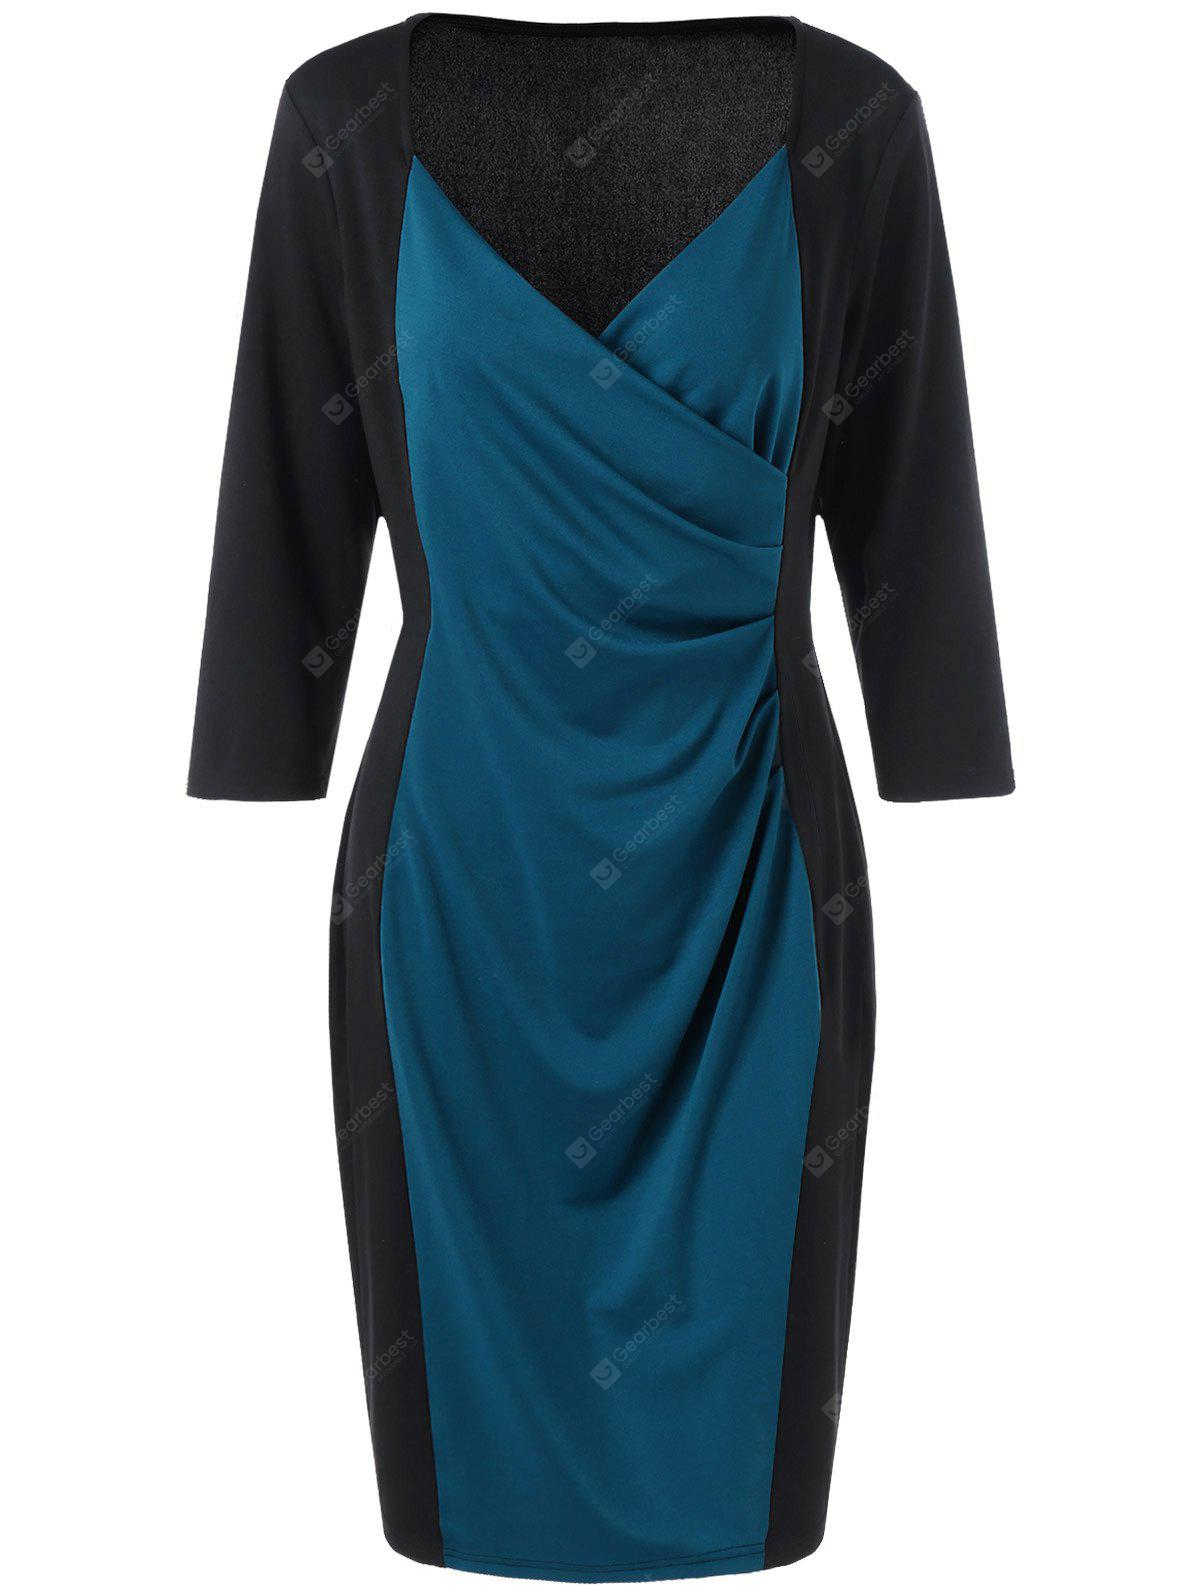 BLUE AND BLACK 3XL Two Tone Plus Size Long Sleeve Sheath Surplice Dress